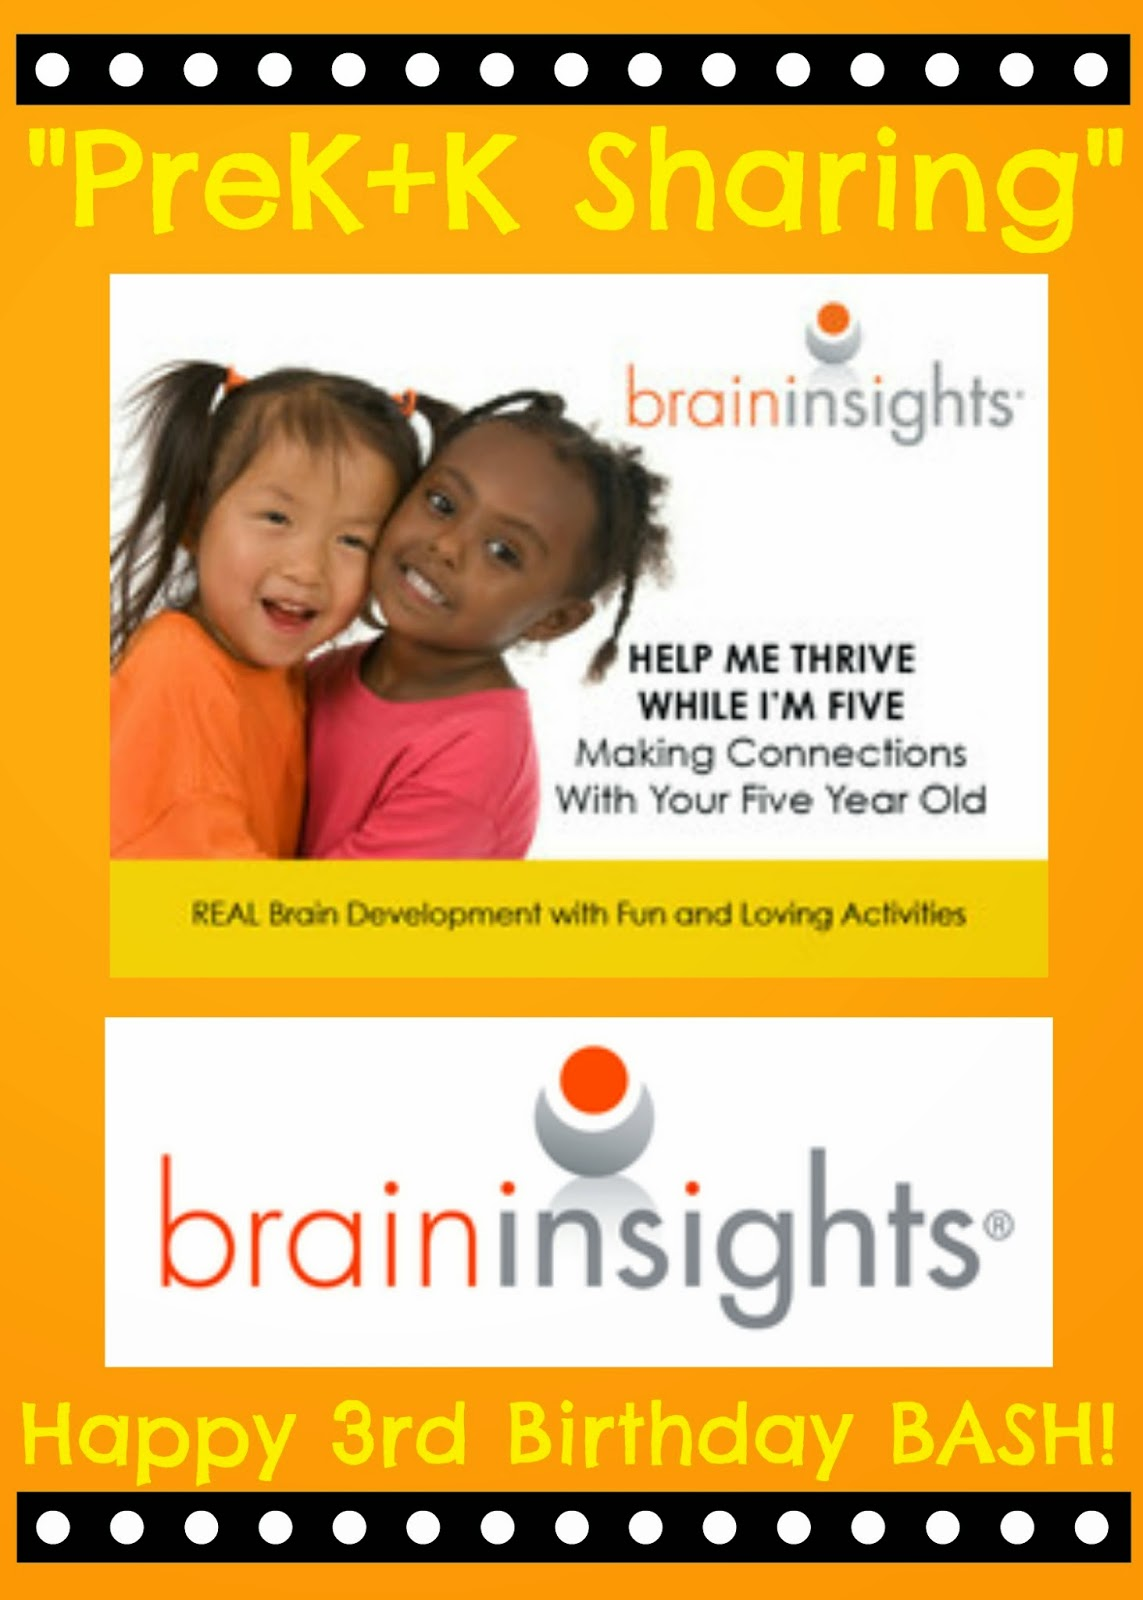 PreK+K Sharing Collaboration: THIRD Birthday Celebration Give Away prizes from Brain Insights